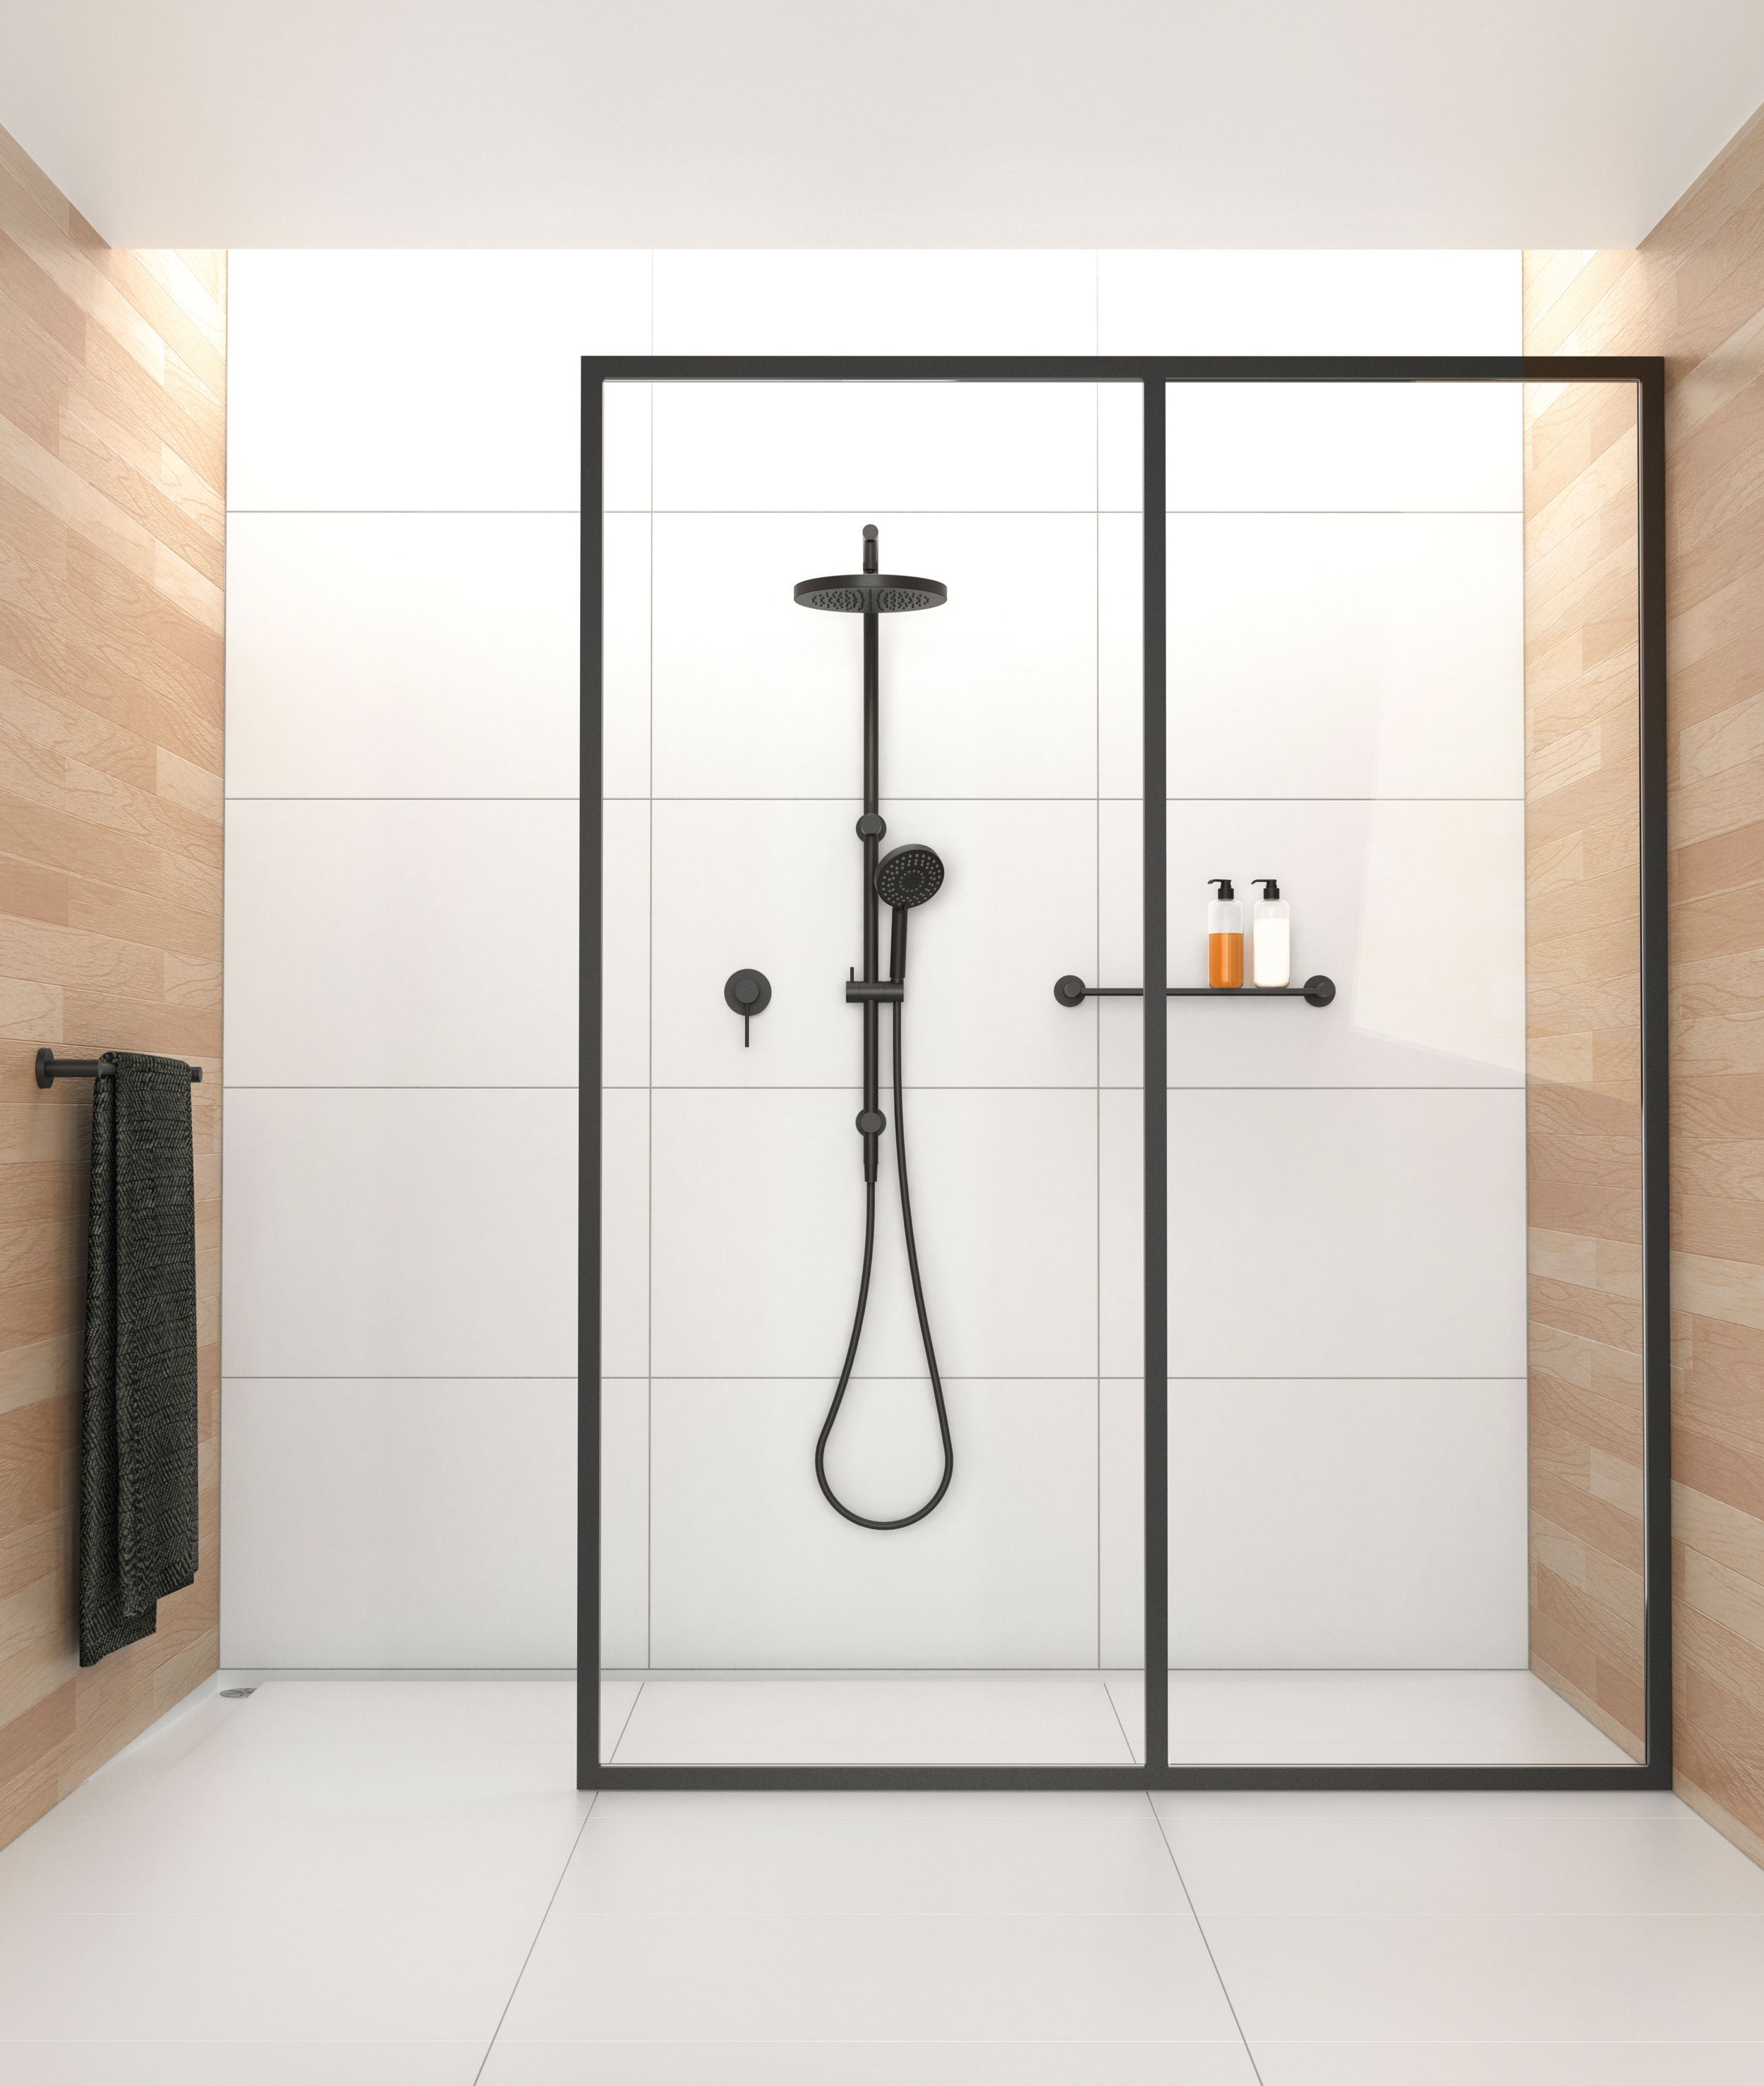 1000  images about ONIX Matte Black Taps on Pinterest   Bathroom  inspiration  Taps and Basin mixer. 1000  images about ONIX Matte Black Taps on Pinterest   Bathroom